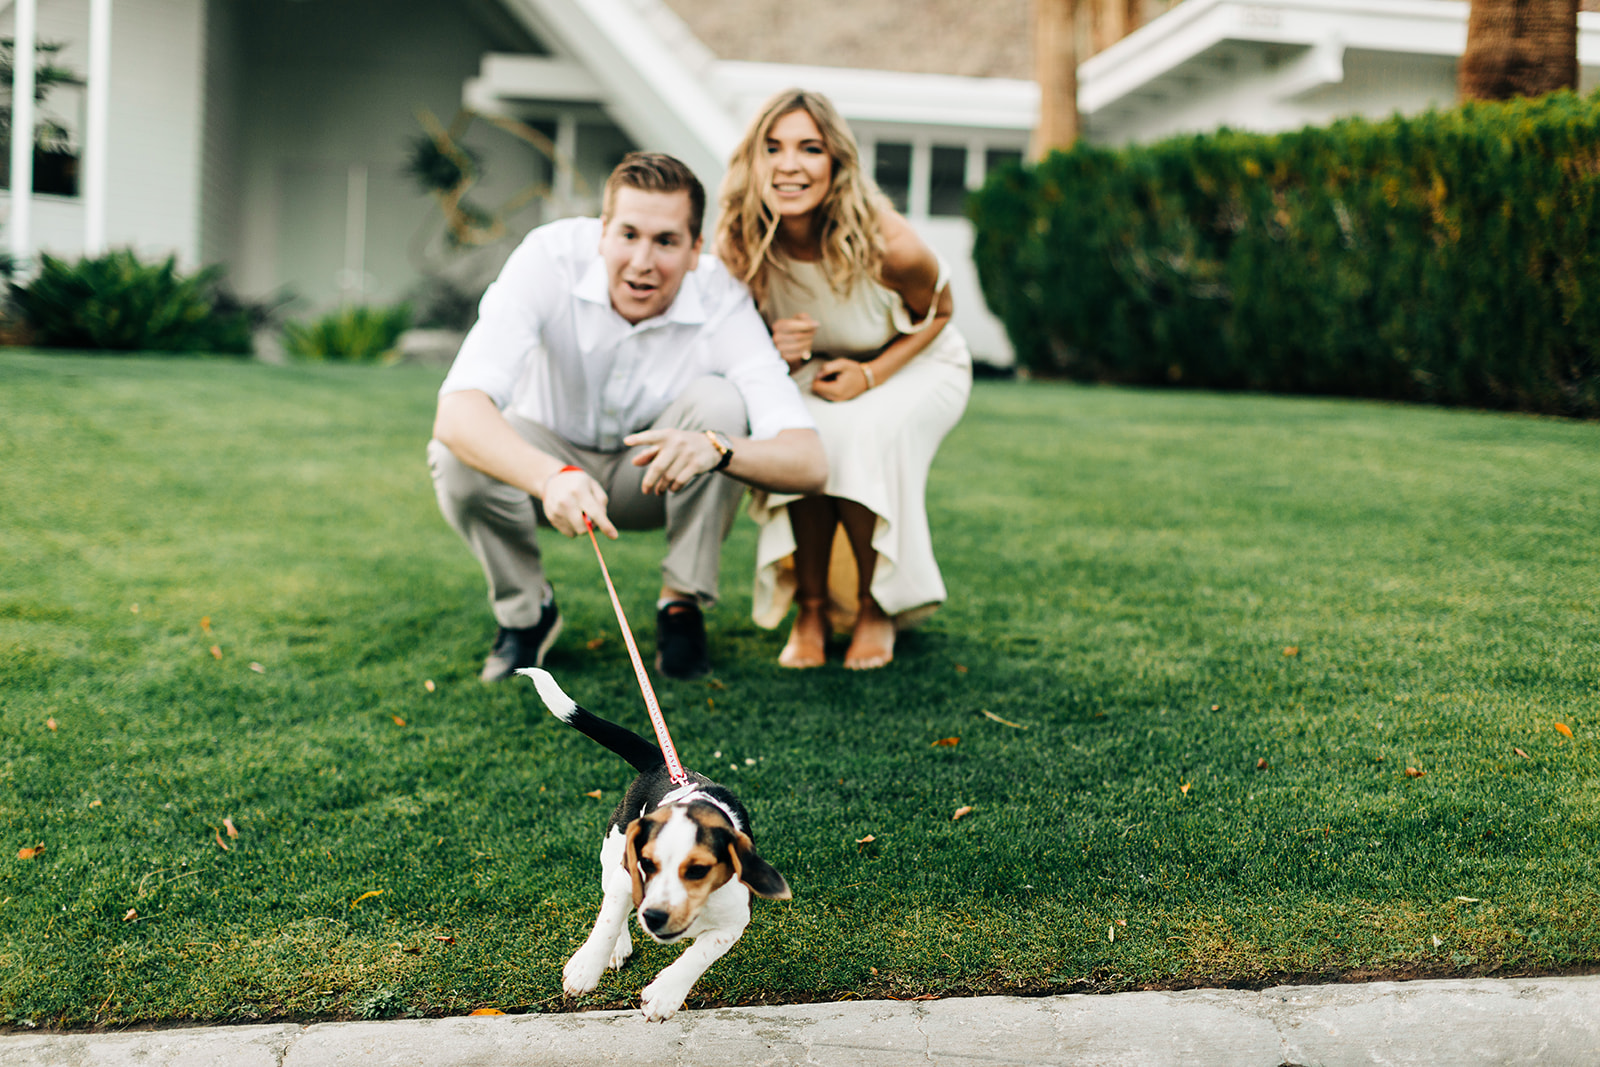 Paulina-Drew_Palm-Springs-Engagement-Photos_Clarisse-Rae_Southern-California-Wedding-Photographer-6